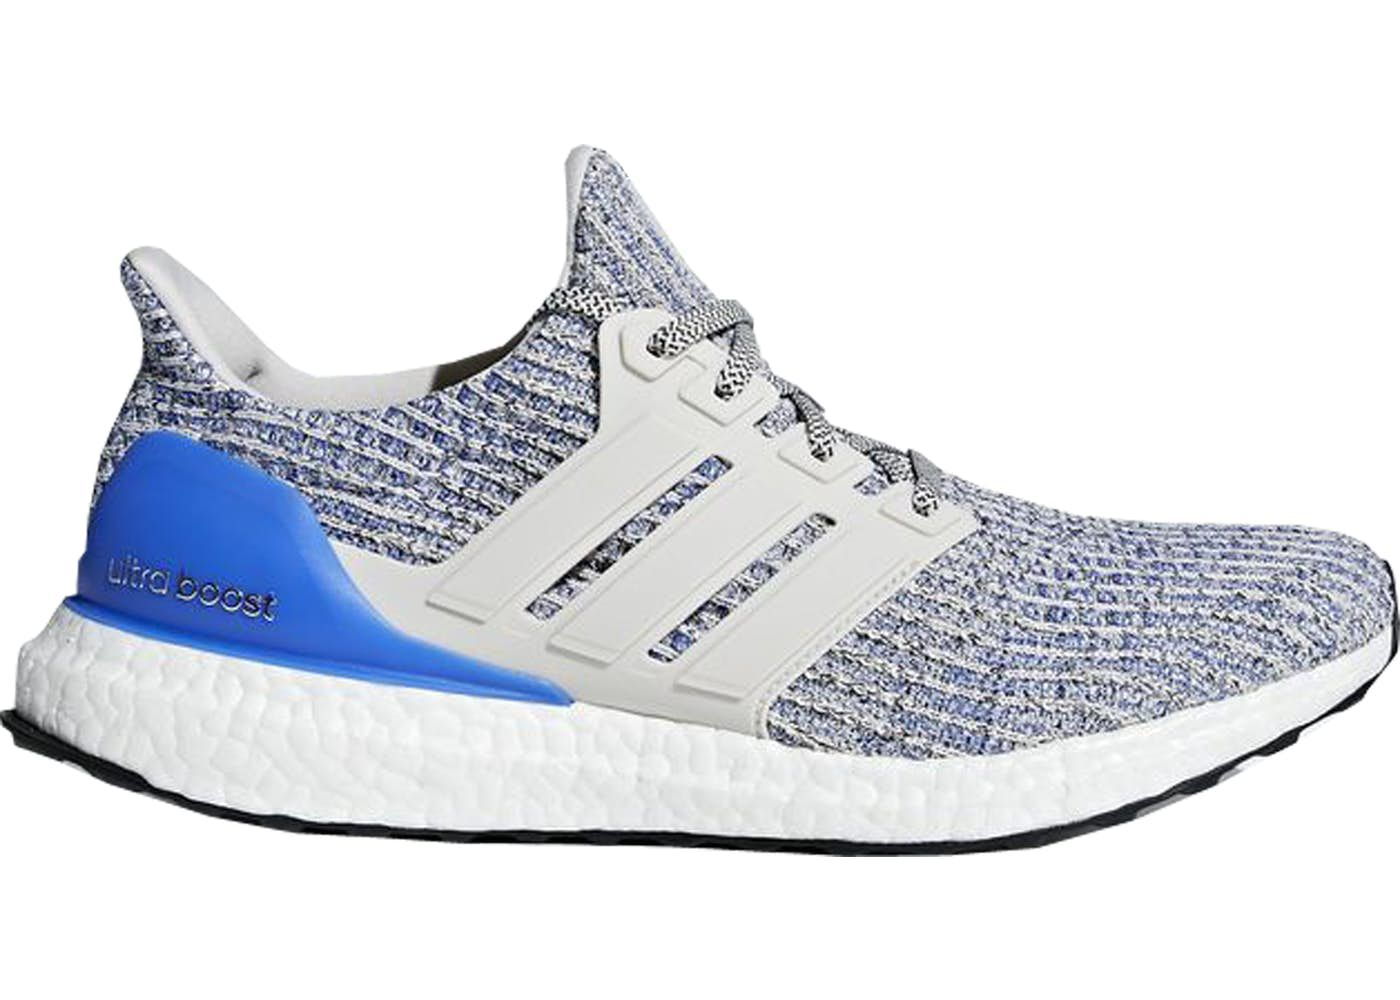 e9517fb3b4598 Check out the adidas Ultra Boost 4.0 White Royal available on StockX